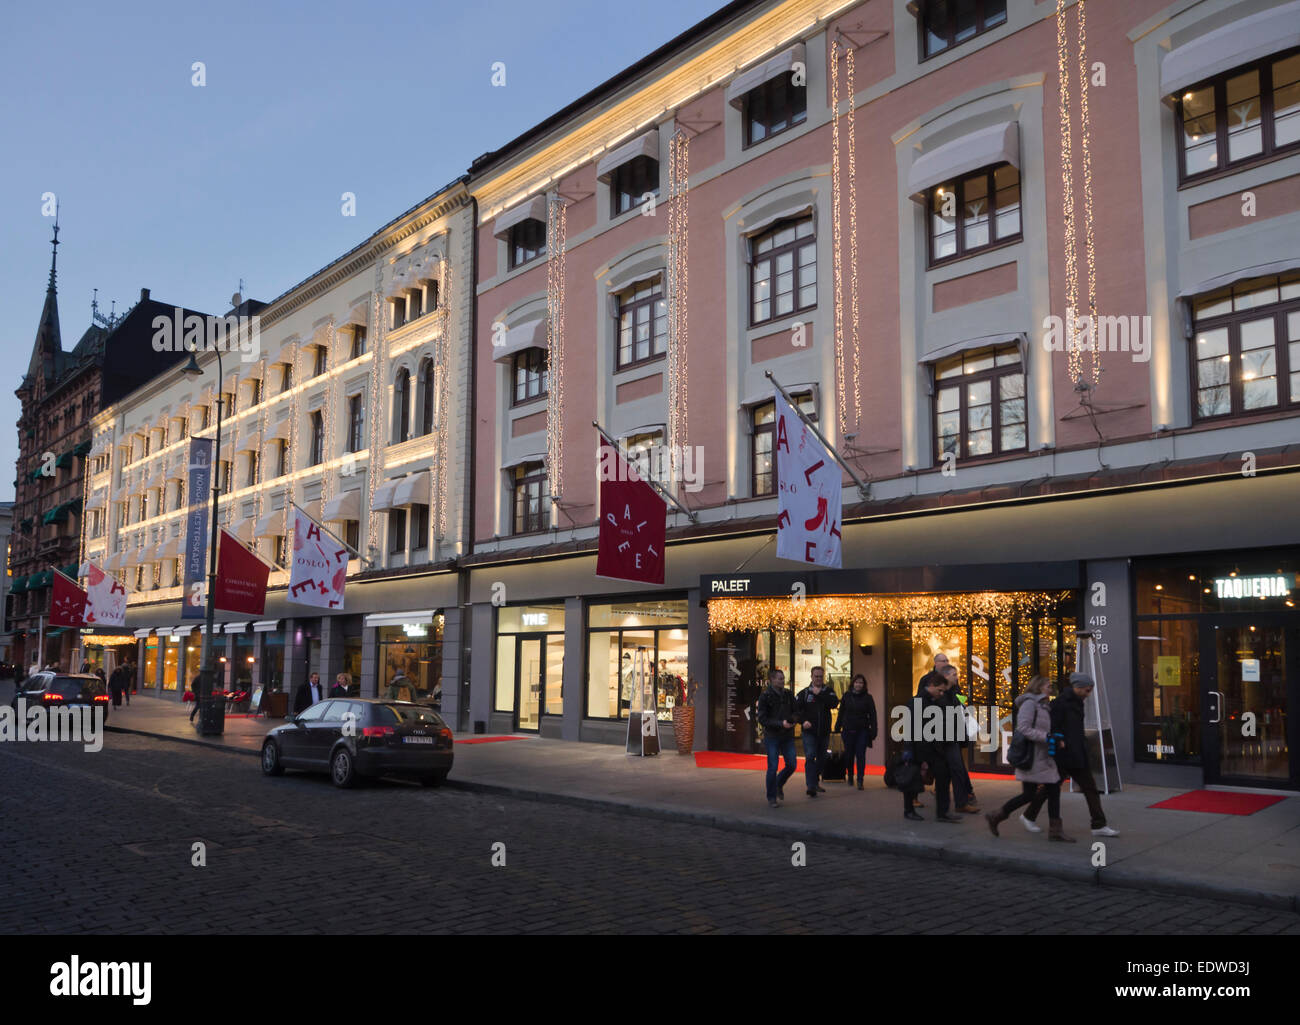 Paleet shopping center in Karl Johans gate Oslo Norway, lighting up for customers in the winter season - Stock Image